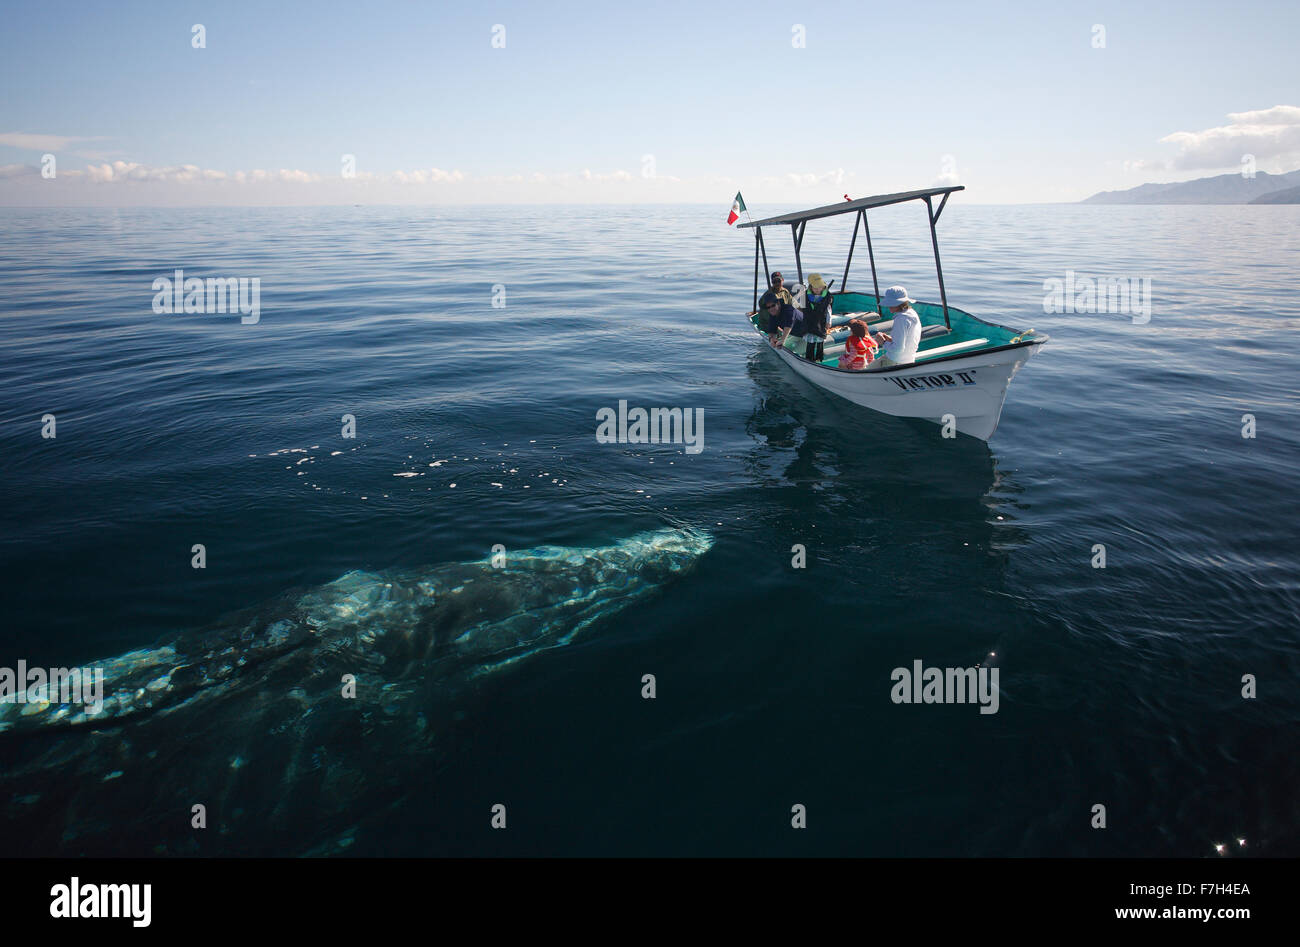 pr7024-D. Gray Whale (Eschrichtius robustus) approaches whale-watching boat with tourists. Magdalena Bay, Baja, - Stock Image